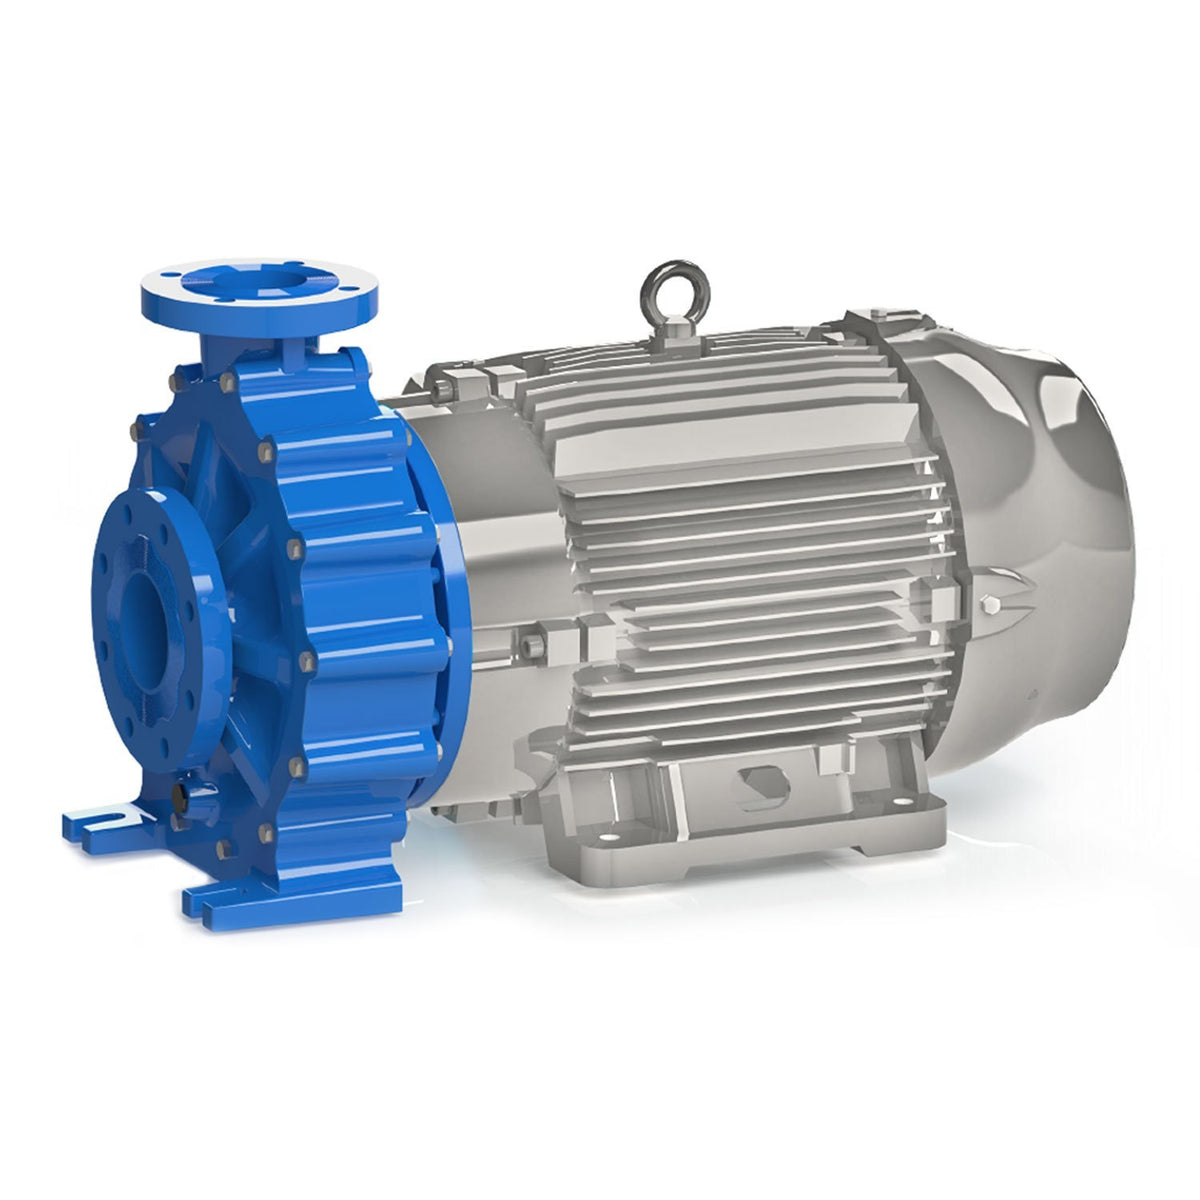 GENESYS PUMPS & ACCESSORIES